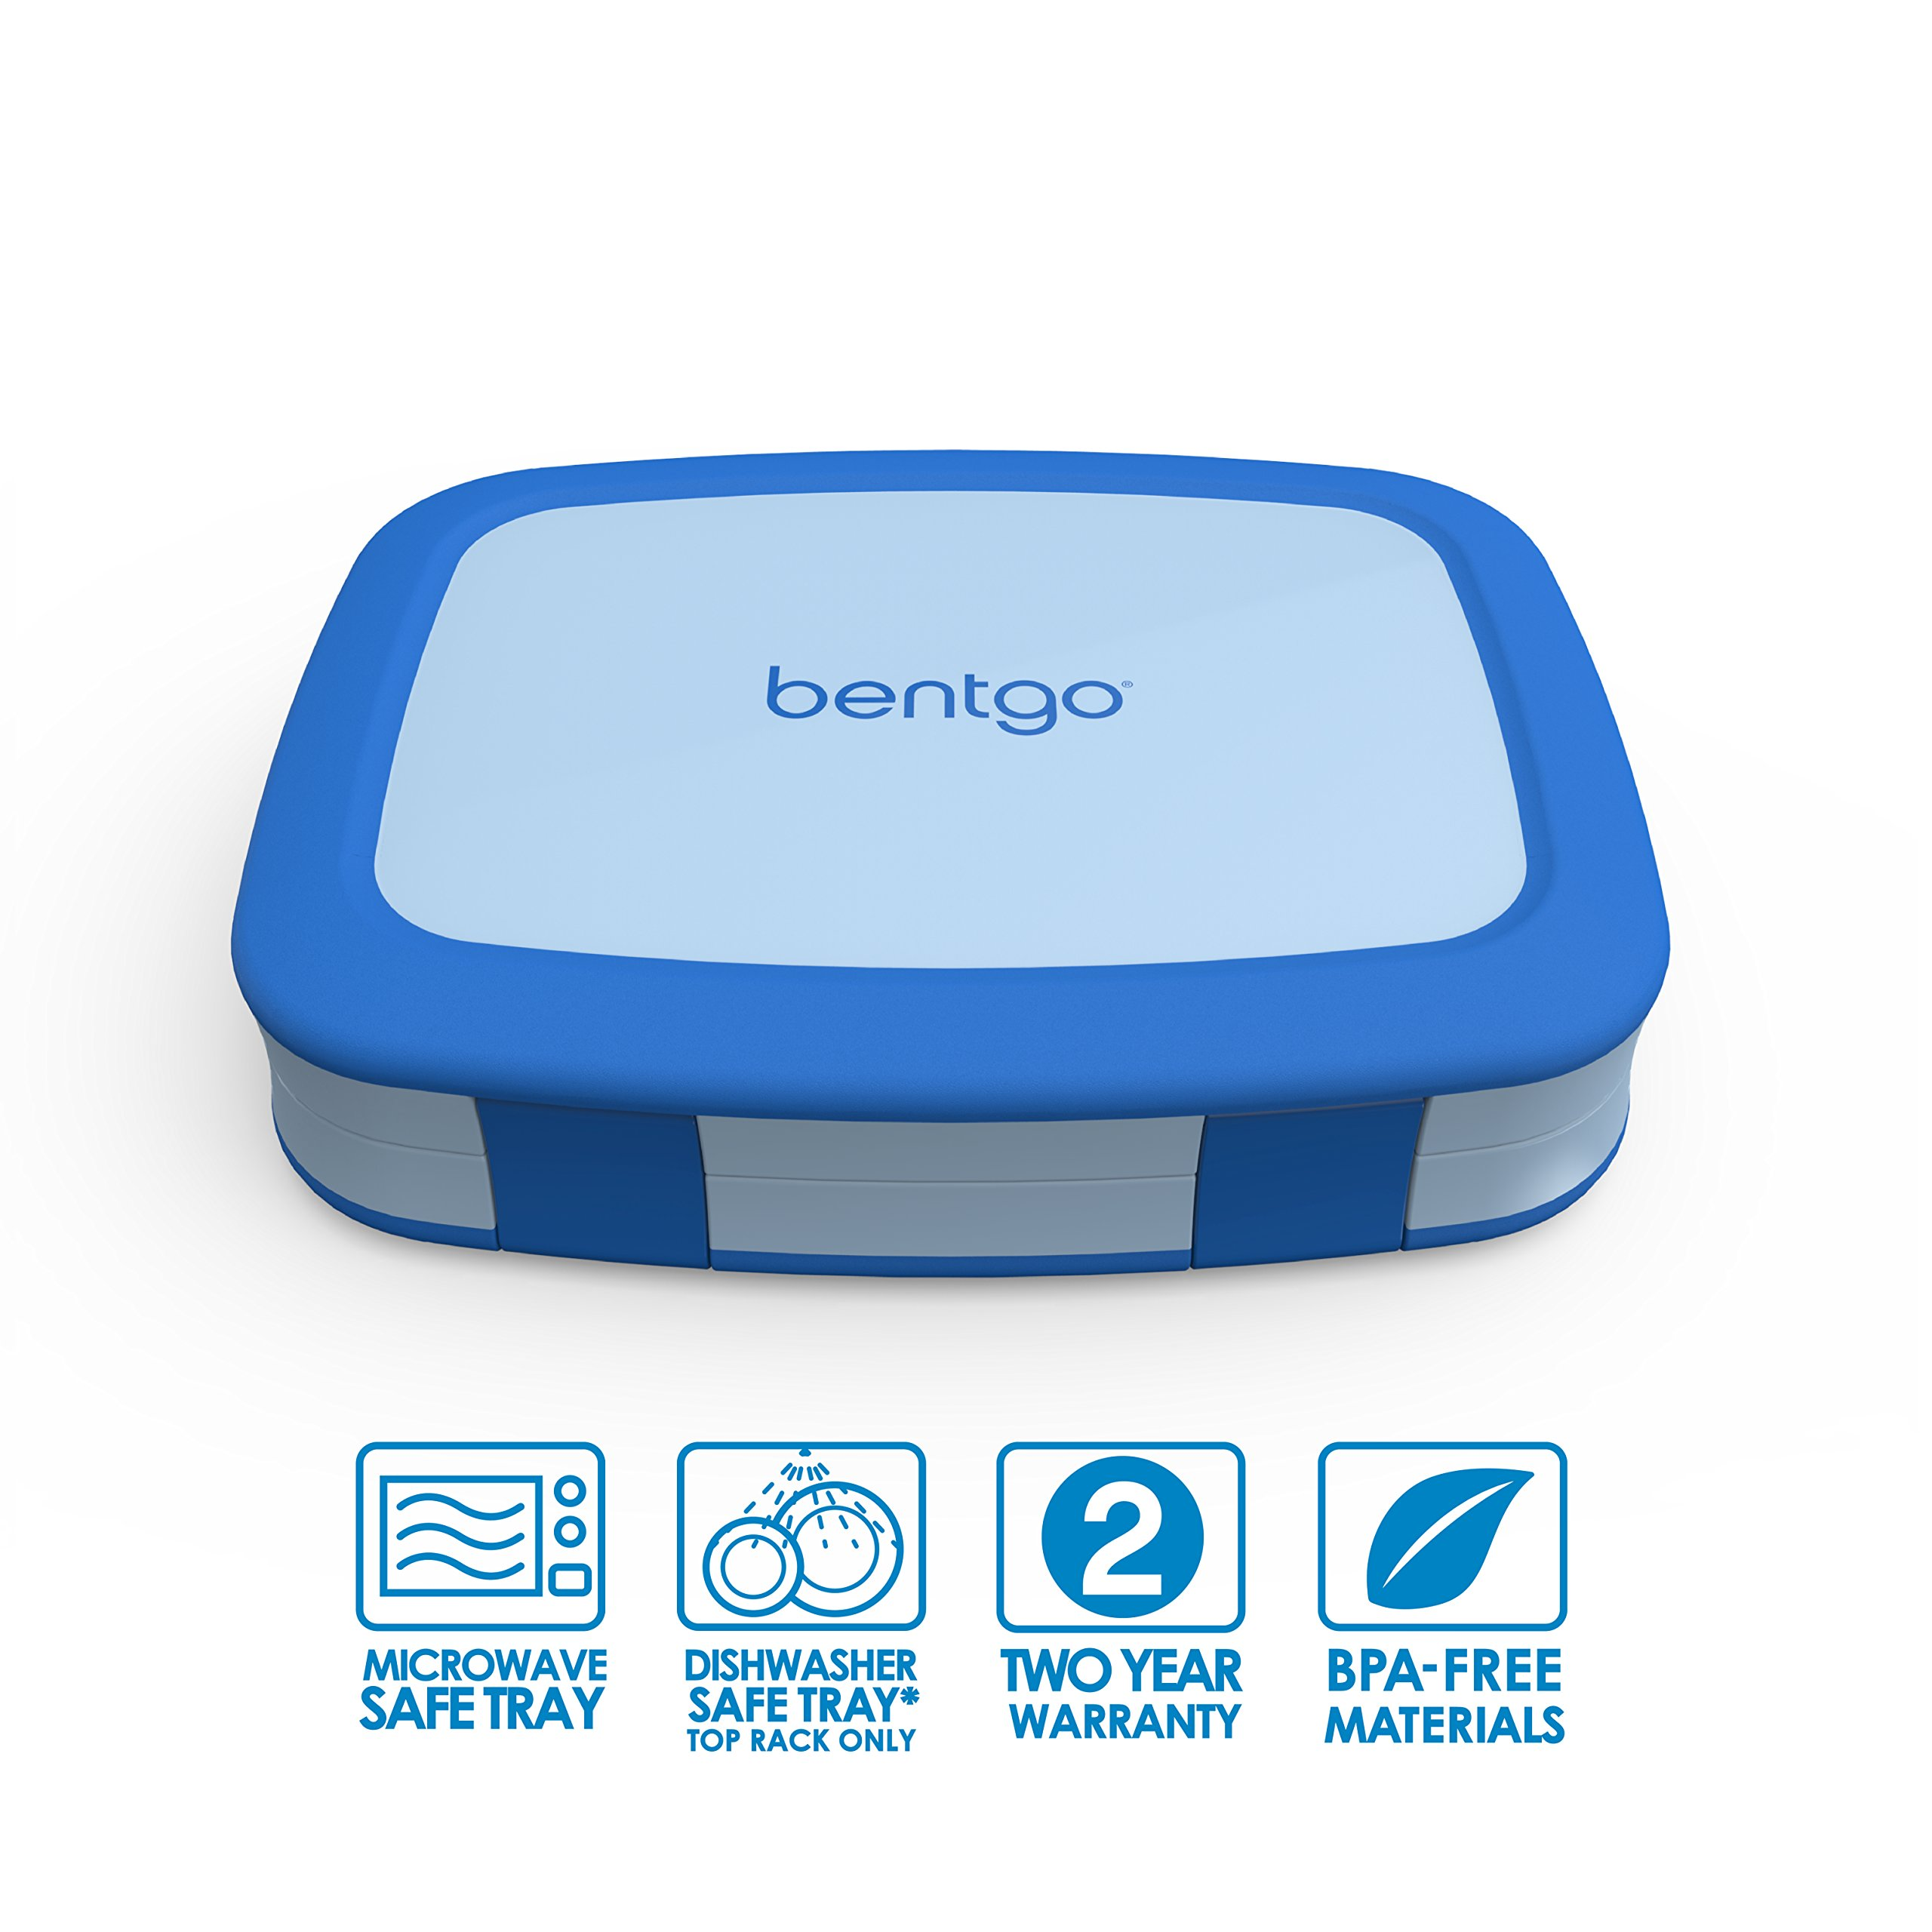 Bentgo Kids Childrens Lunch Box - Bento-Styled Lunch Solution Offers Durable, Leak-Proof, On-the-Go Meal and Snack Packing by Bentgo (Image #2)